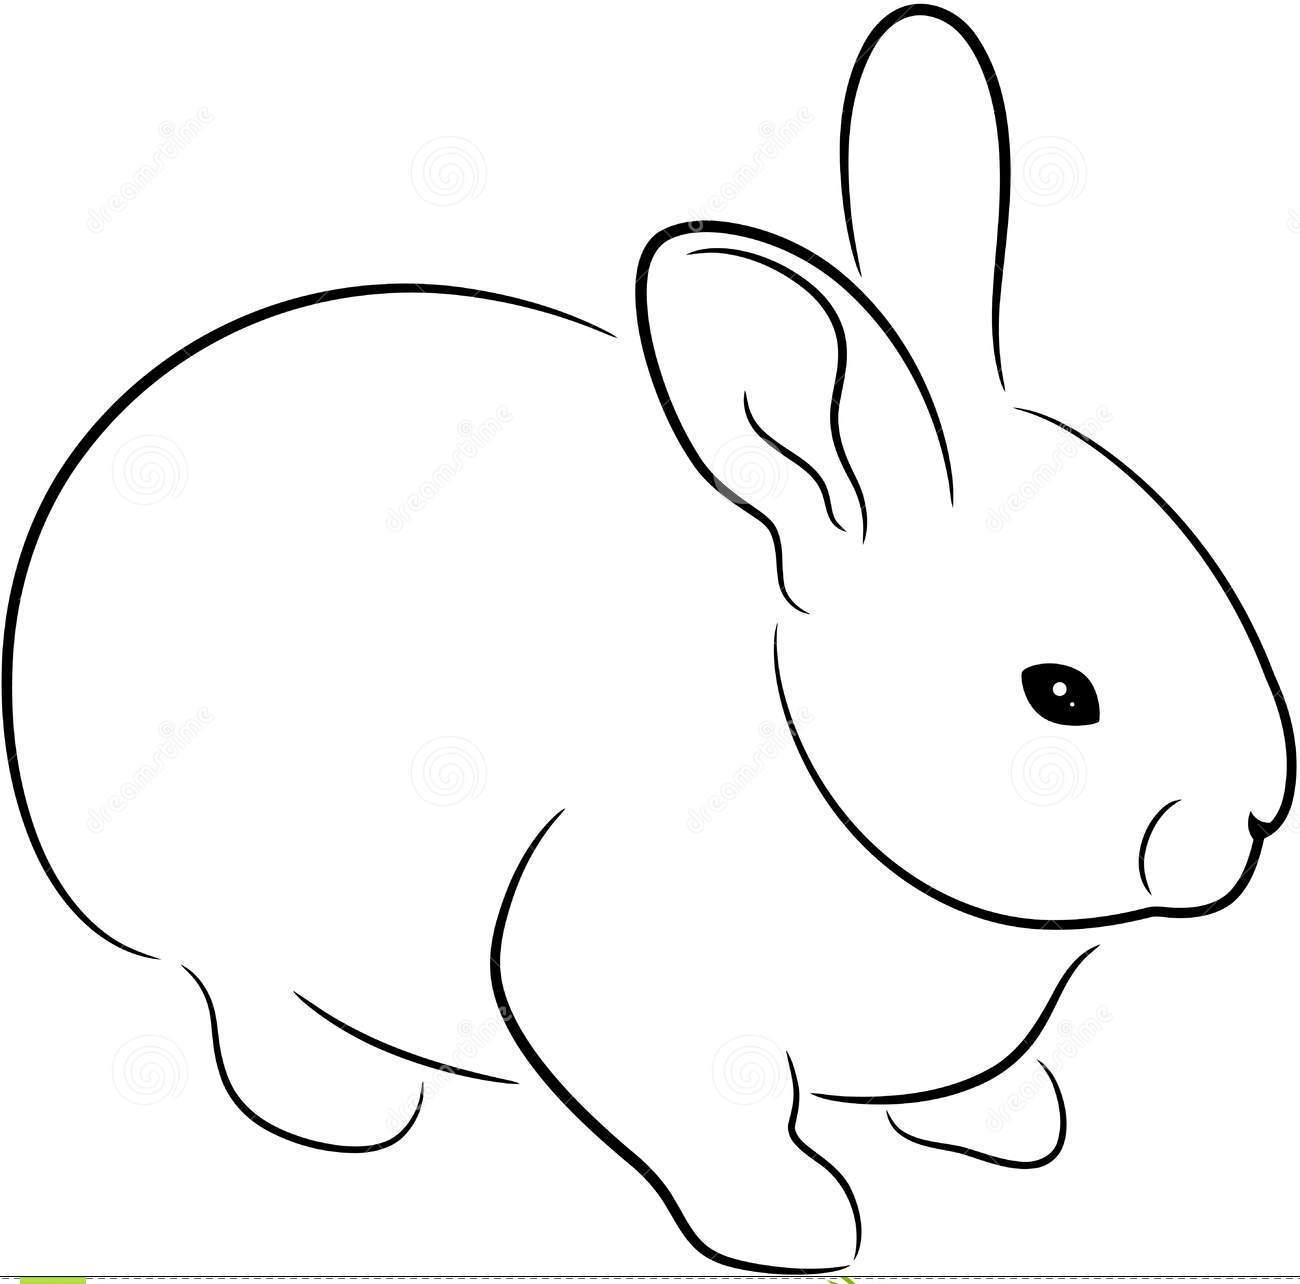 New Black Outline Rabbit Tattoo Design